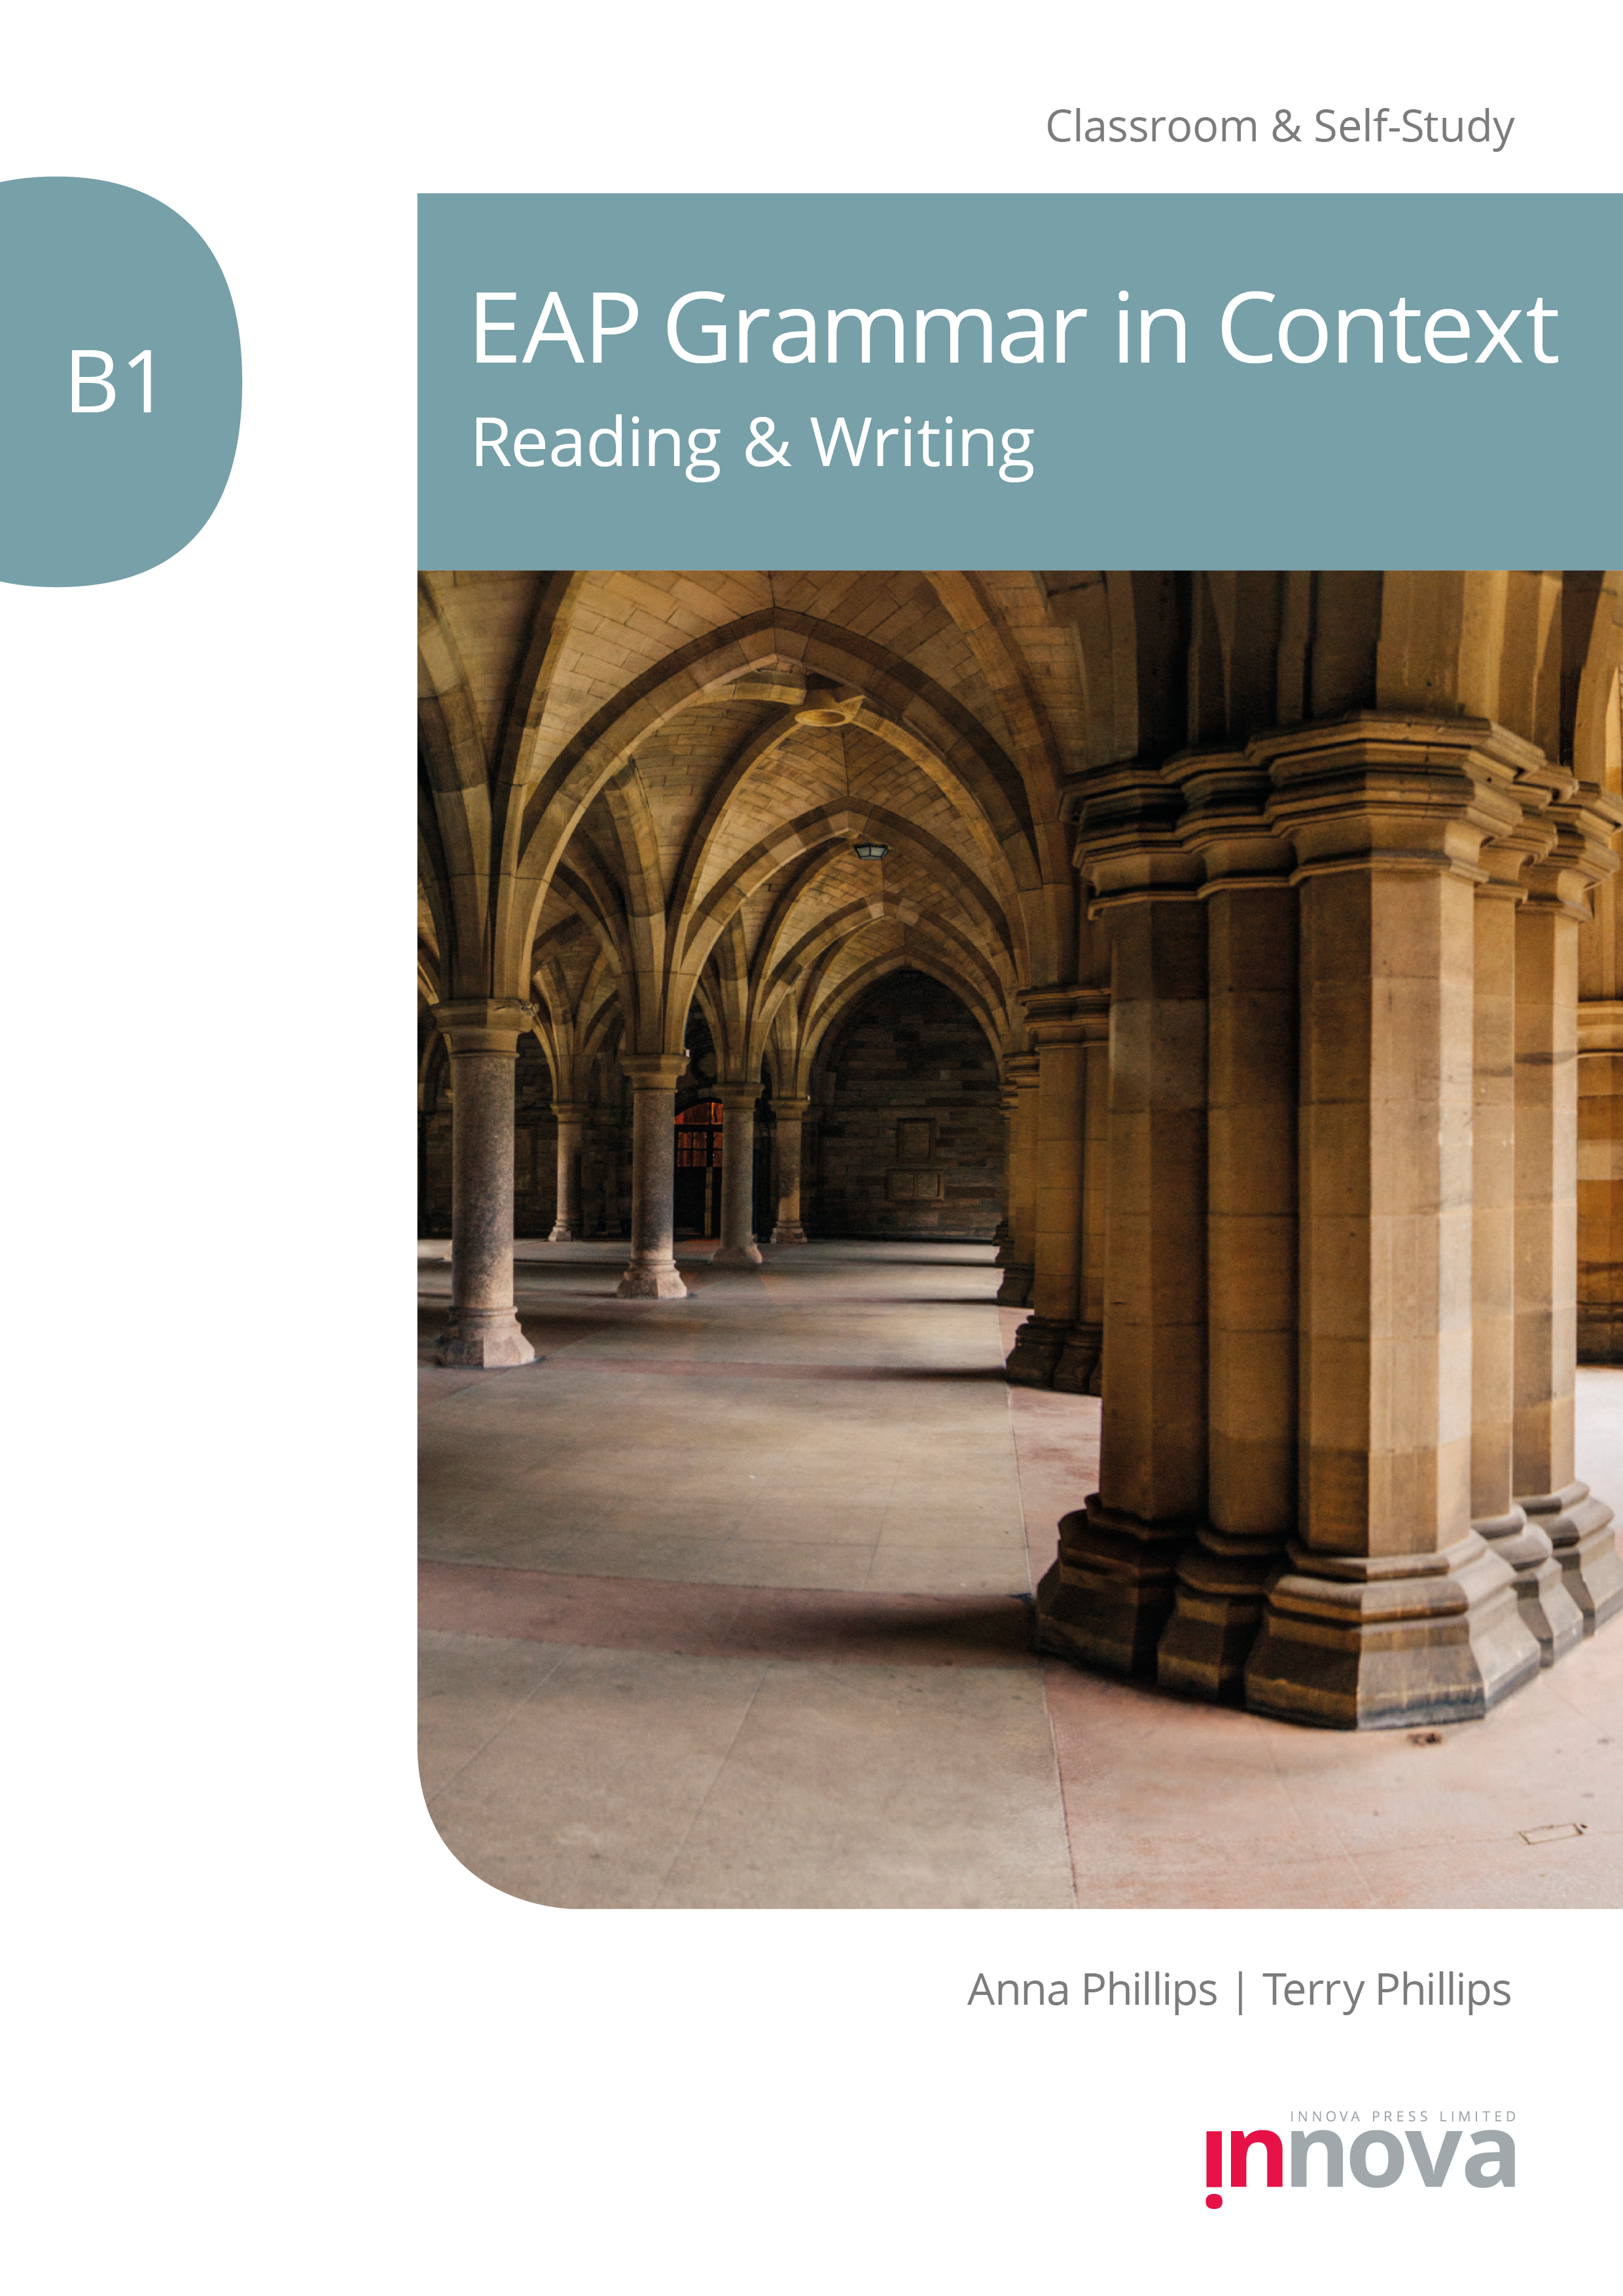 Front cover for EAP Grammar in Context B1: Reading & Writing published by Innova Press, interior of stone archways